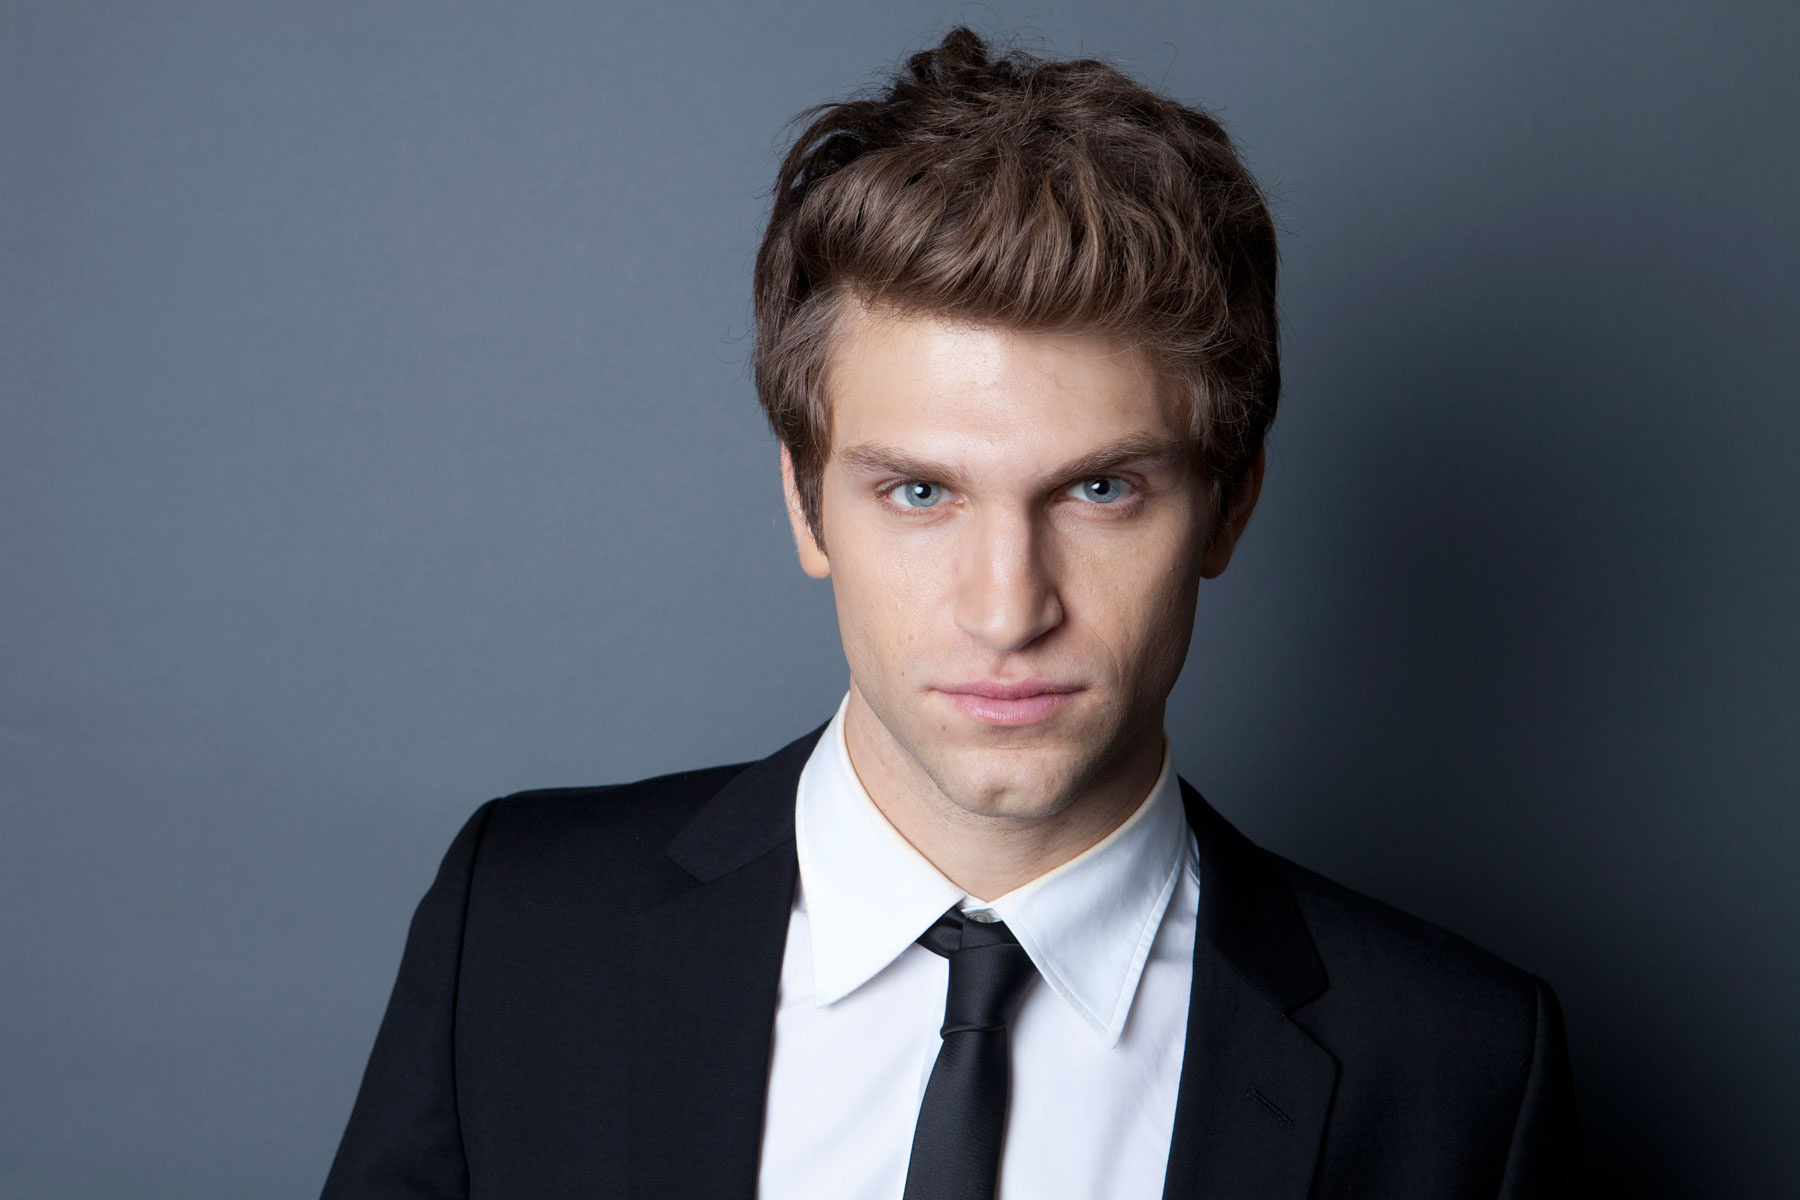 keegan allen 2018 dating tattoos smoking amp body facts